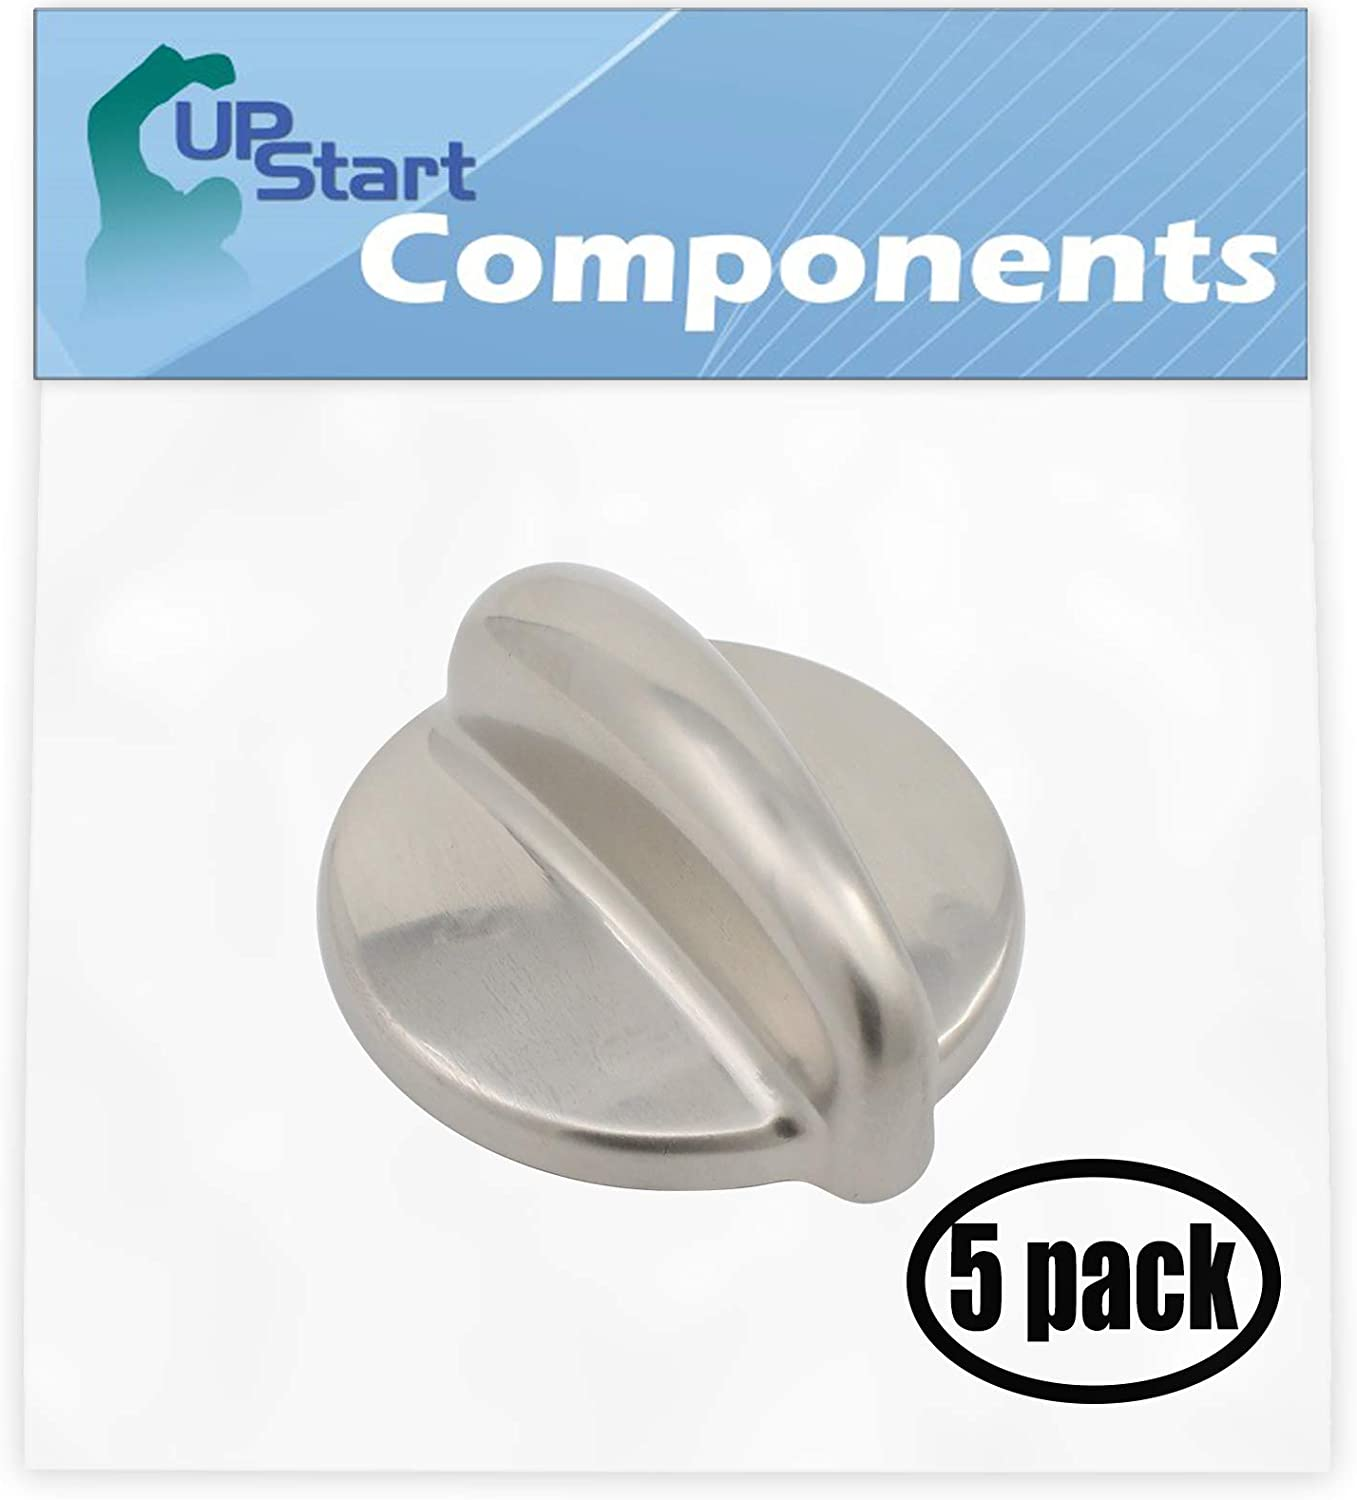 WB32M10 REPLACEMENT O-ring for GE Gas Cooktop Seal Burner